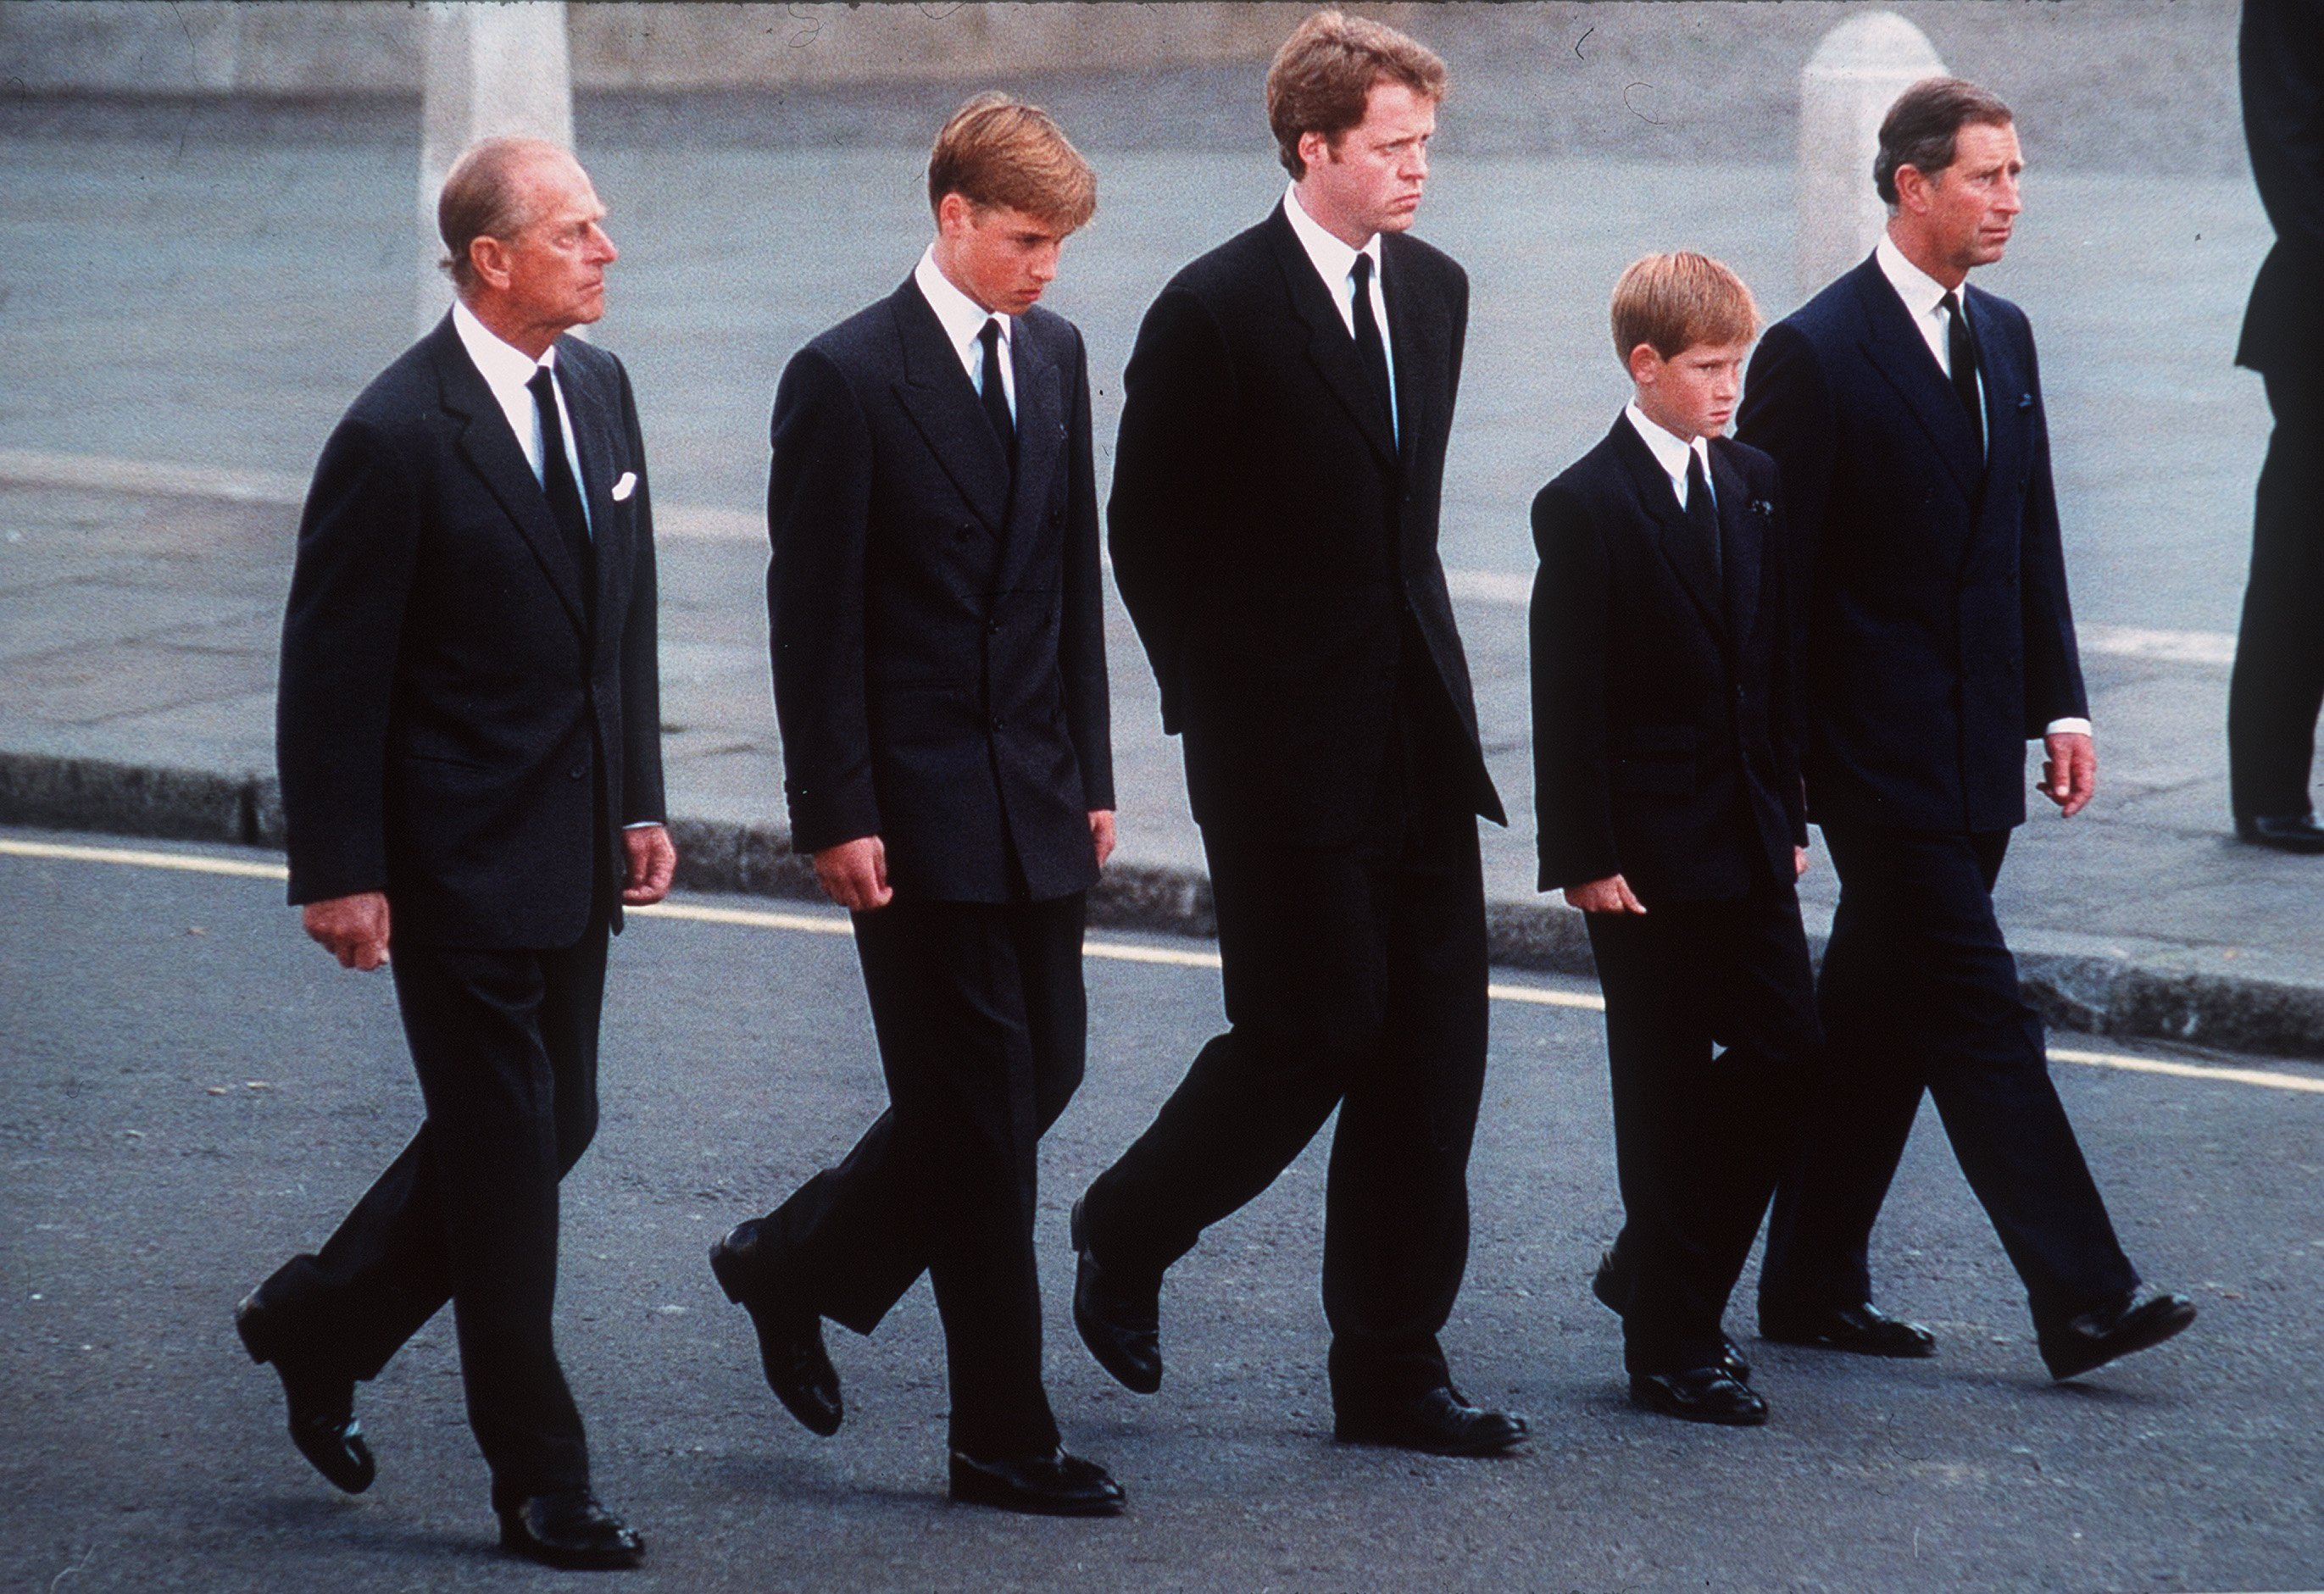 Image Credits: Getty Images / Anwar Hussein   Prince Philip, the Duke of Edinburgh, Prince William, Earl Spencer, Prince Harry and Prince Charles, the Prince of Wales follow the coffin of Diana, Princess of Wales this in September 6, 1997 file photo in London, England.